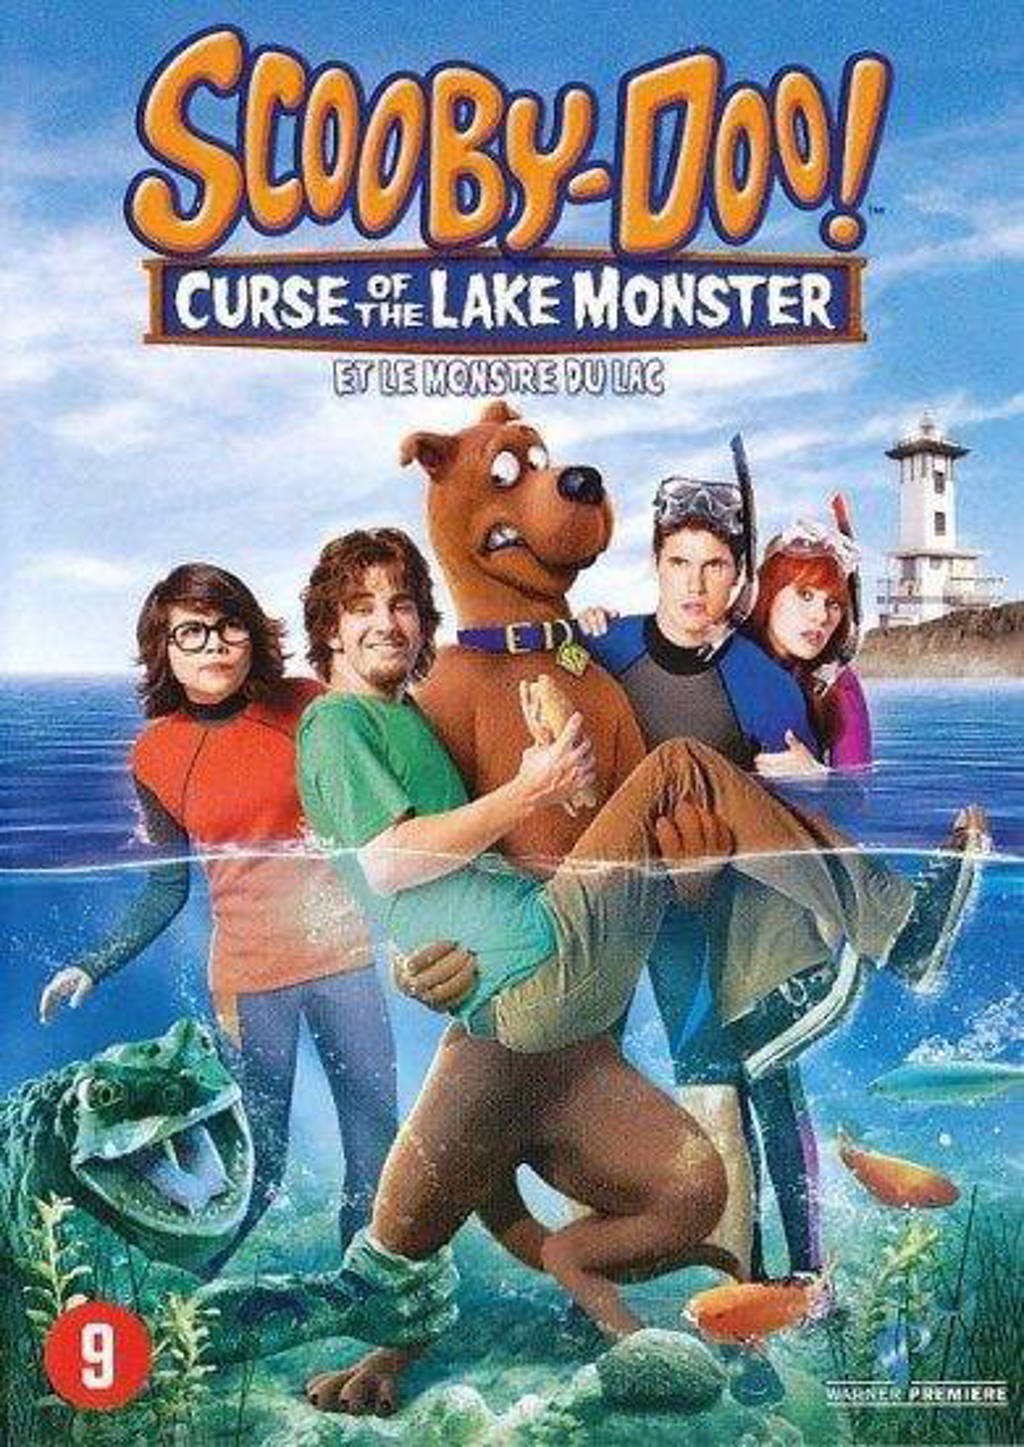 Scooby Doo - Curse of the lake monster (DVD)